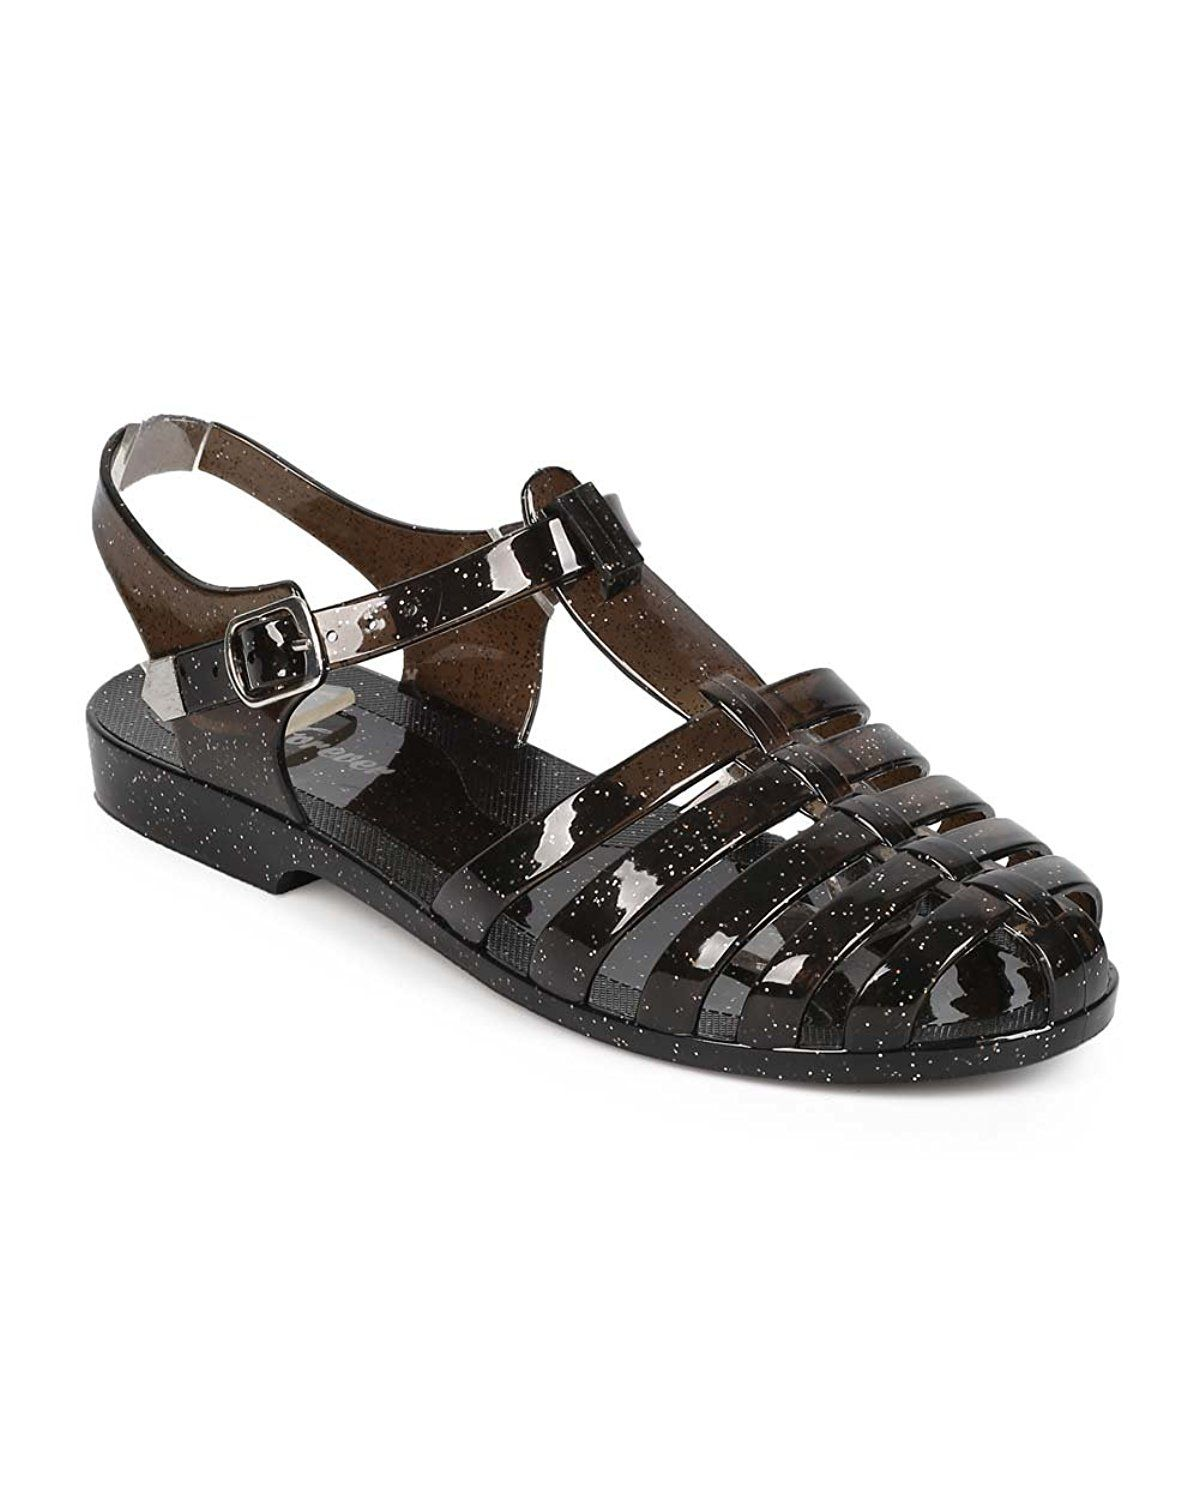 ef4a4c757f1c Forever EA65 Women Glitter Jelly Classic Fisherman Sandal Flat - Black     Find out more details by clicking the image   Jelly Sandals